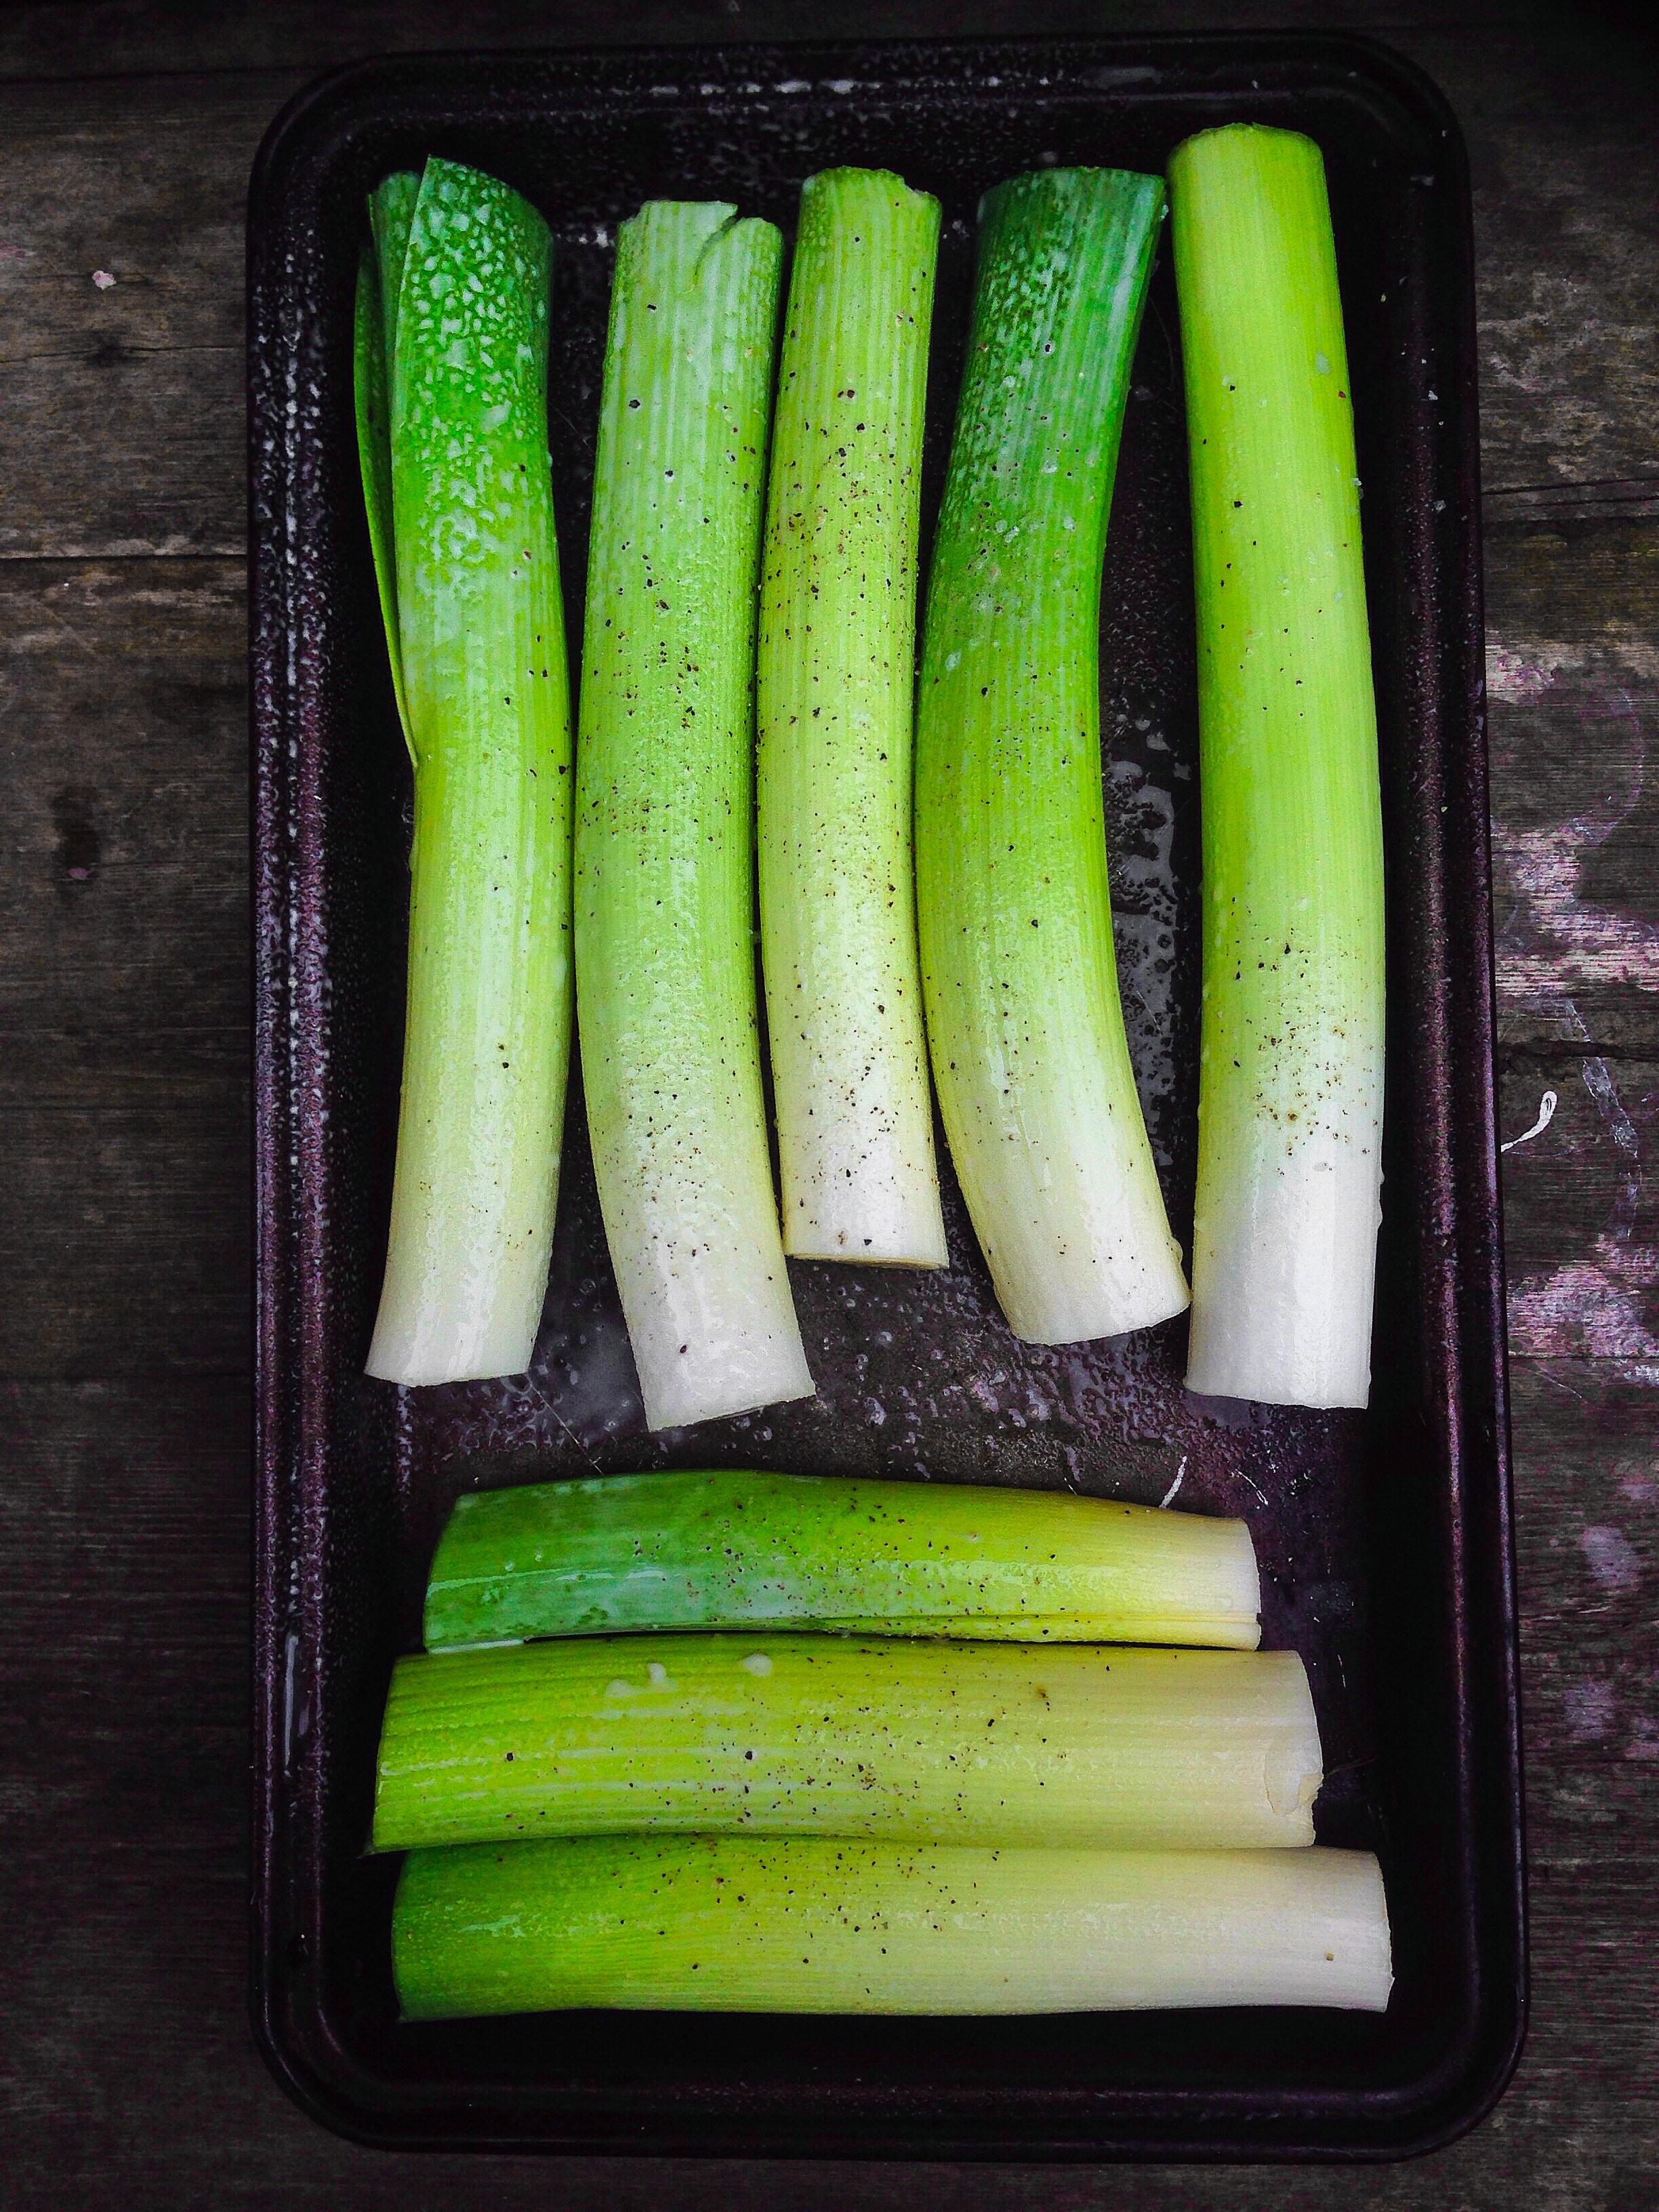 trim your leeks to fit your roasting tin